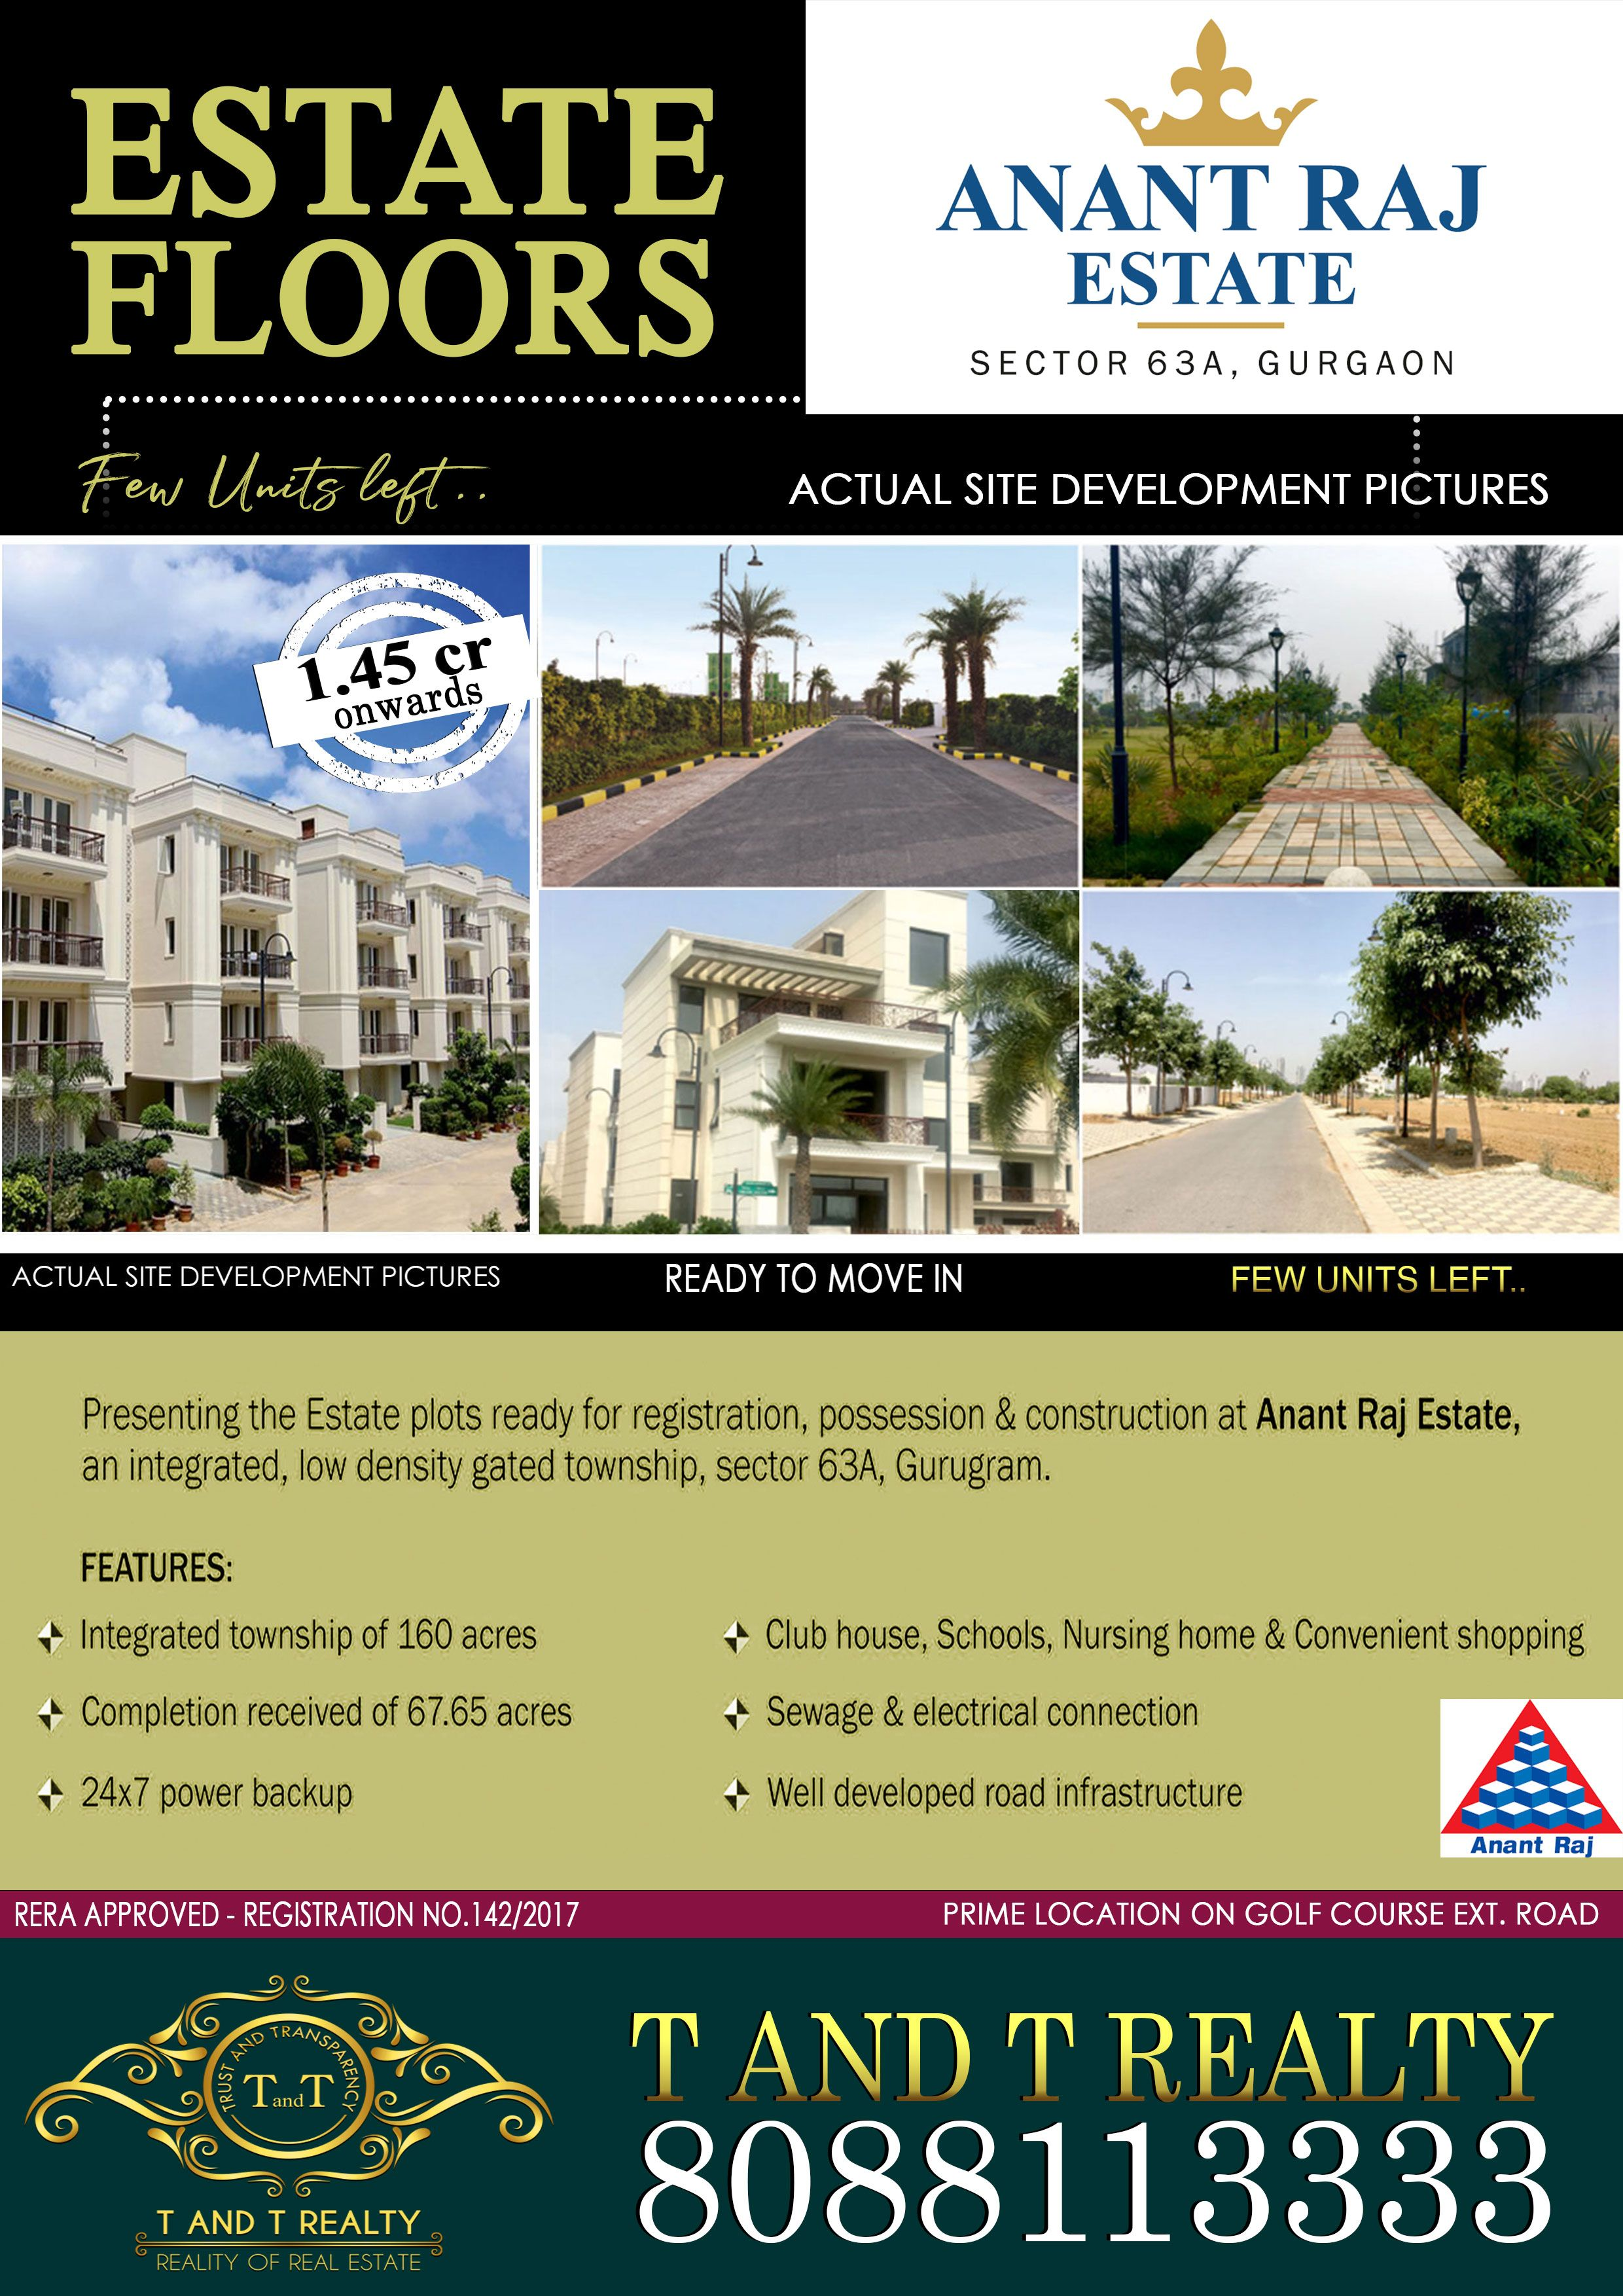 Anant Raj Estate Estates The Unit Mansions